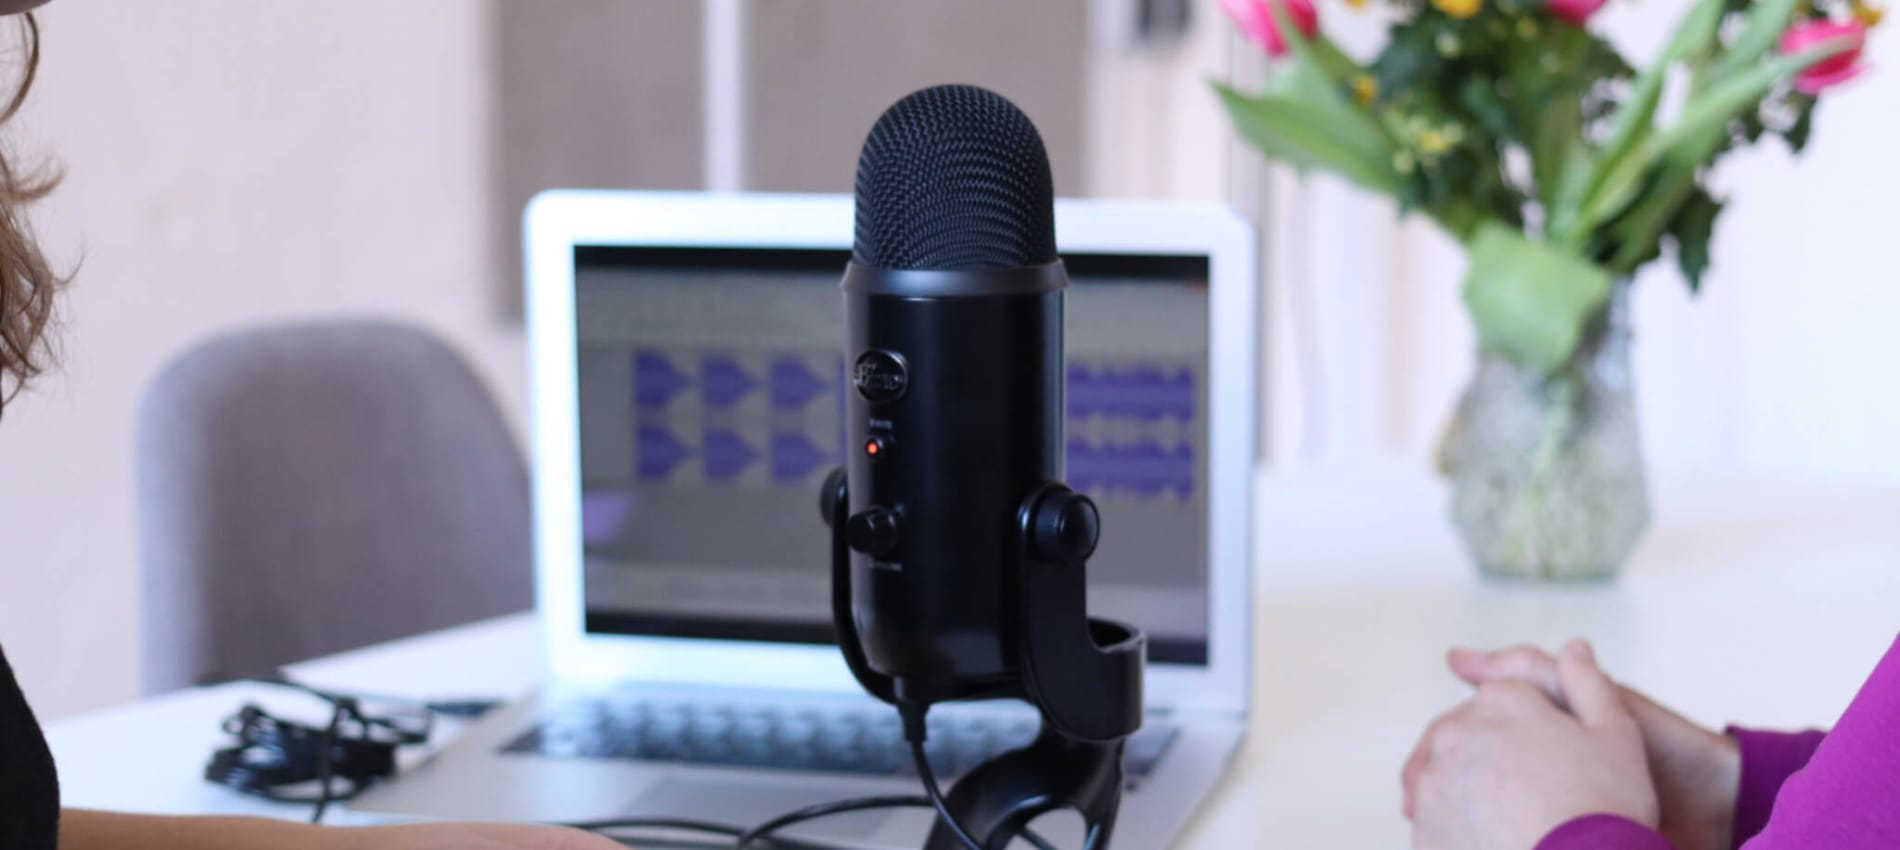 Podcasts with Purpose and  Slack for Support: Top Insider Picks  for HR Pros - cowomen-UUPpu2sYV6E-unsplash-2-e1565246535767.jpg